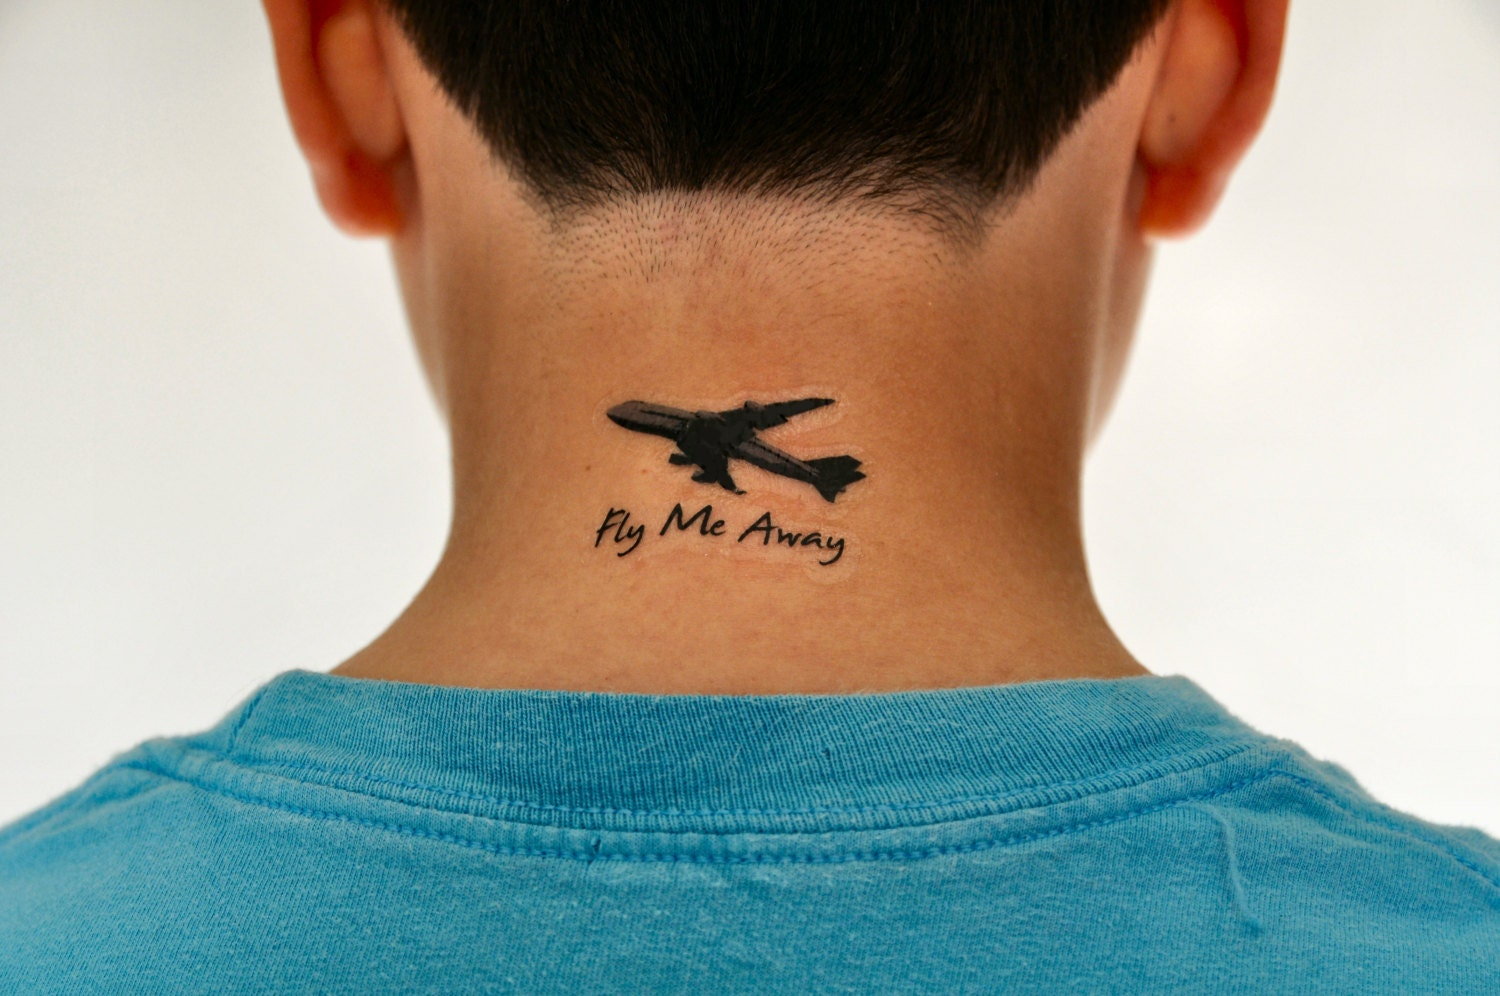 fly me away temporary tattoo plane tattoo by temporarytattooyou. Black Bedroom Furniture Sets. Home Design Ideas